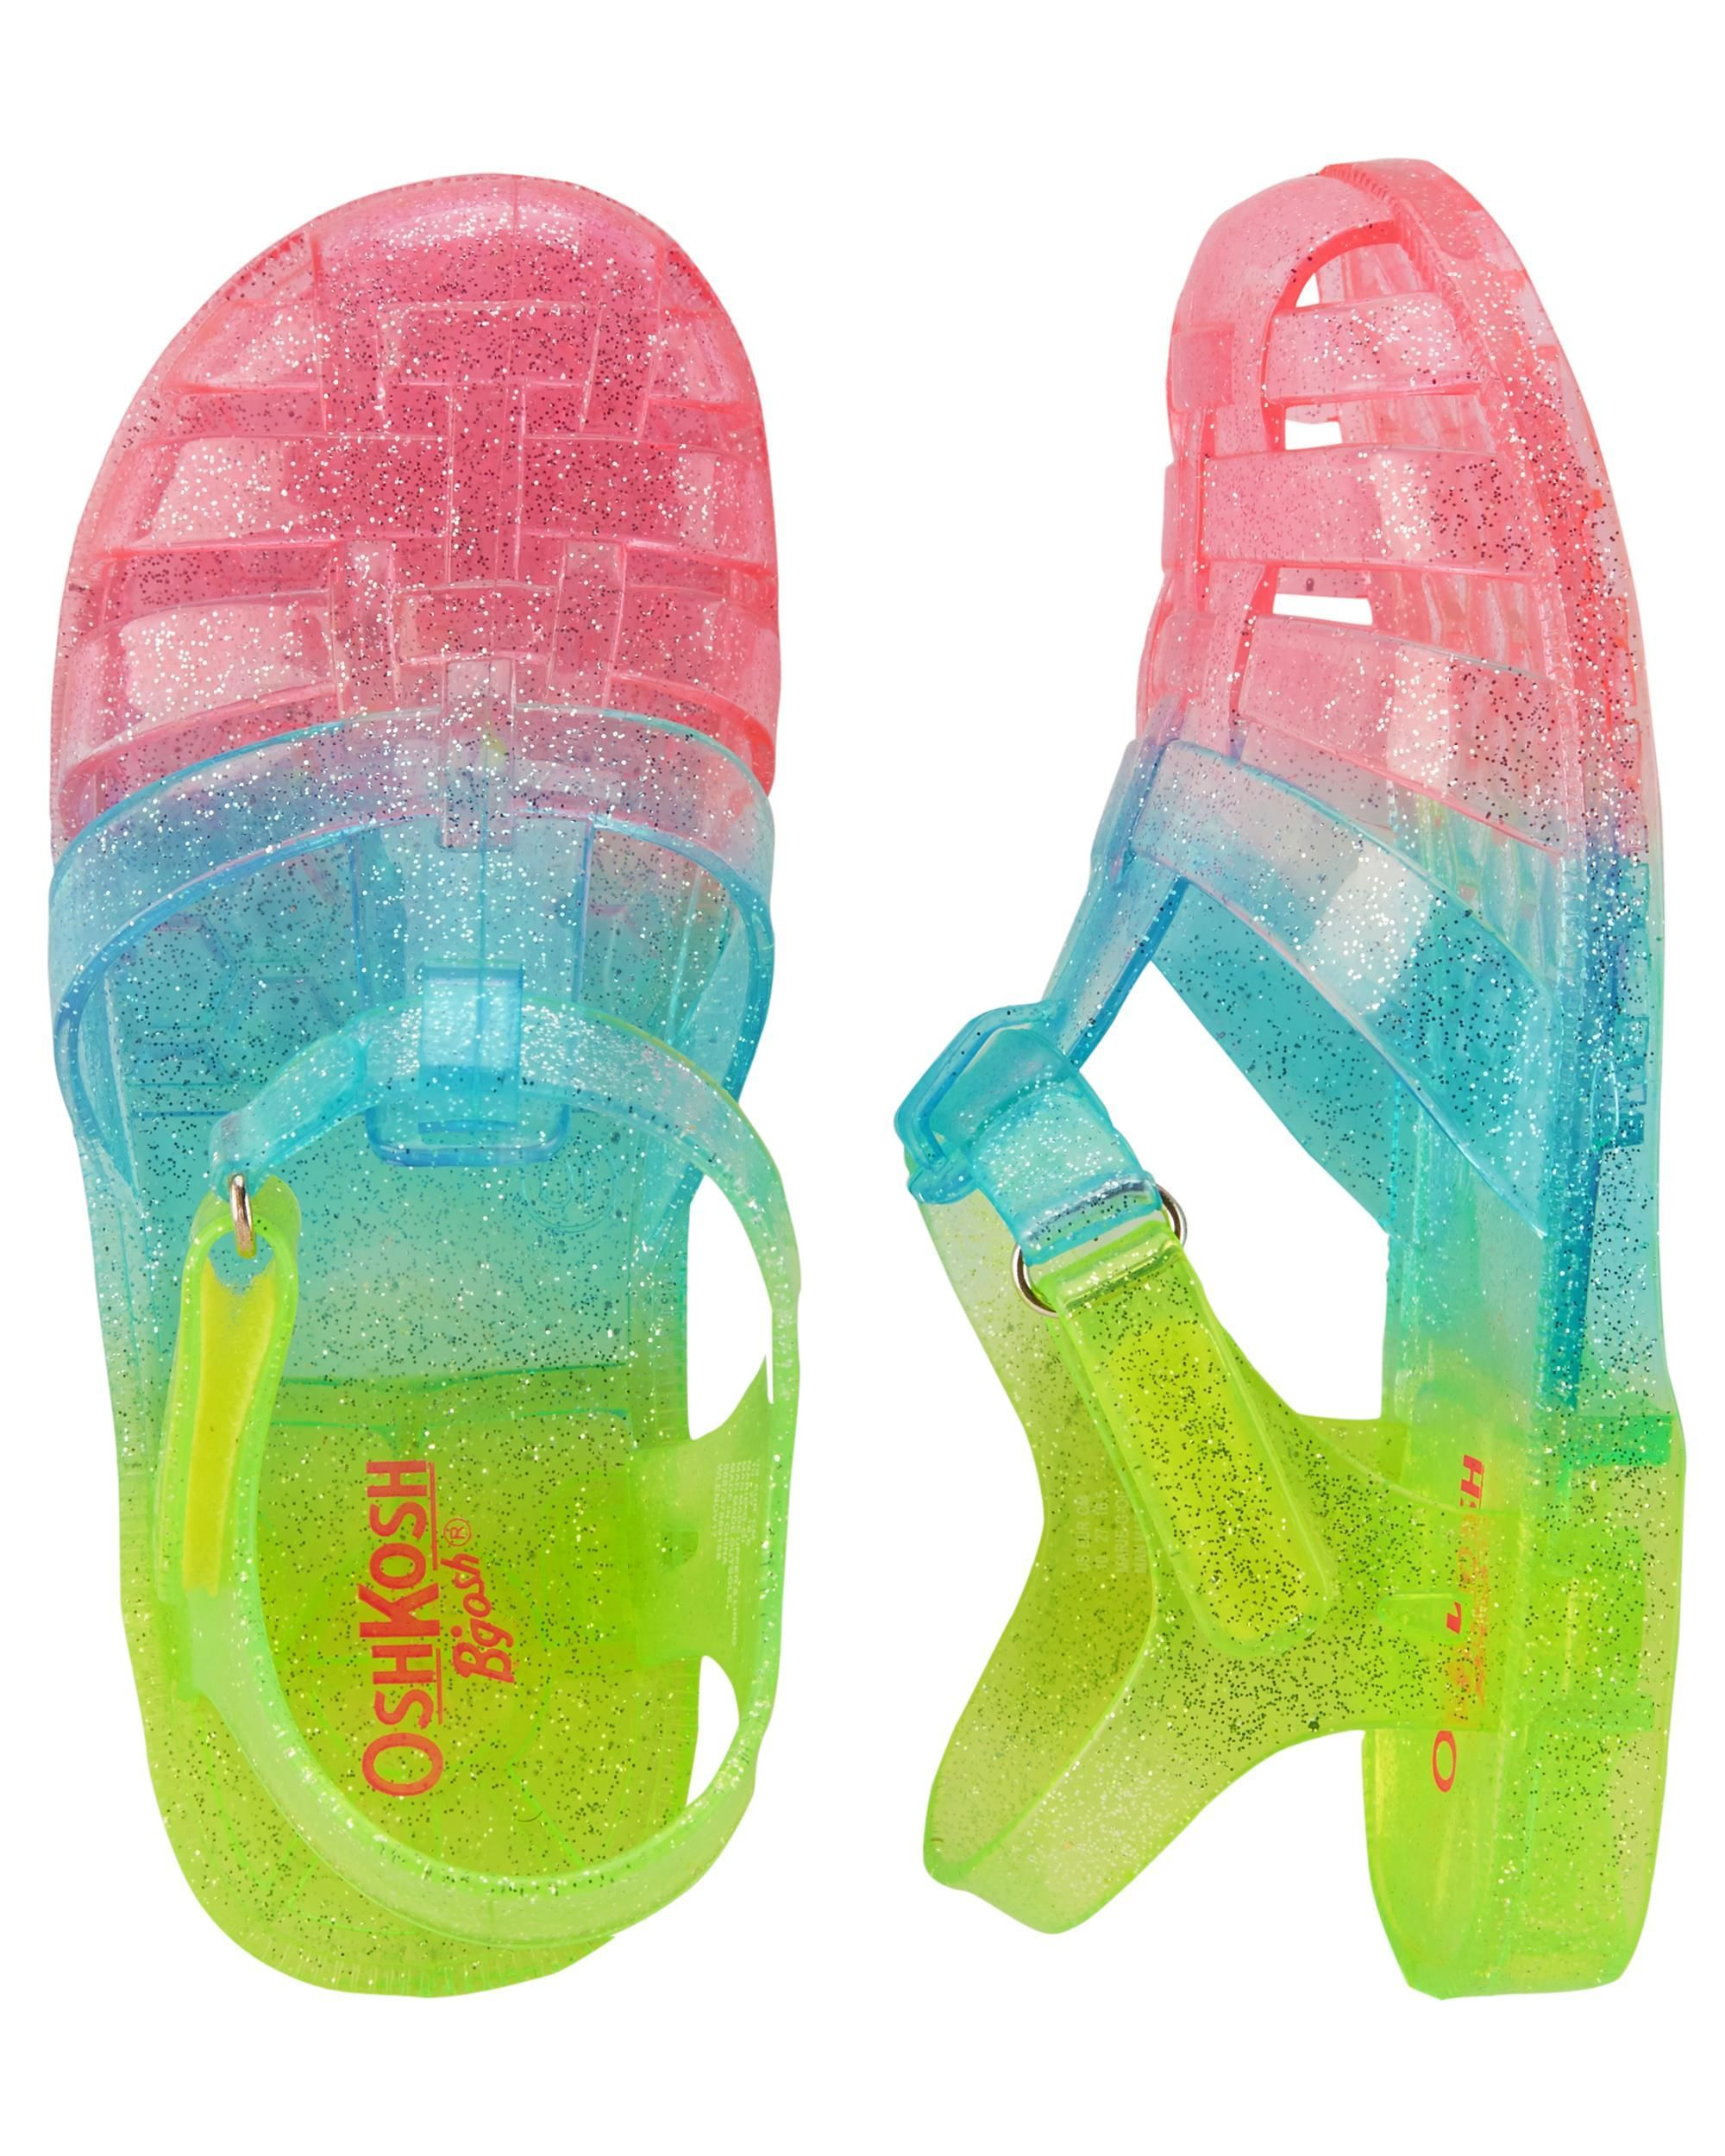 c6fac03c011f Who can say no to rainbow jelly sandals?! With a simple hook-and-loop  strap, these sandals are sure to be her new favorite shoes!